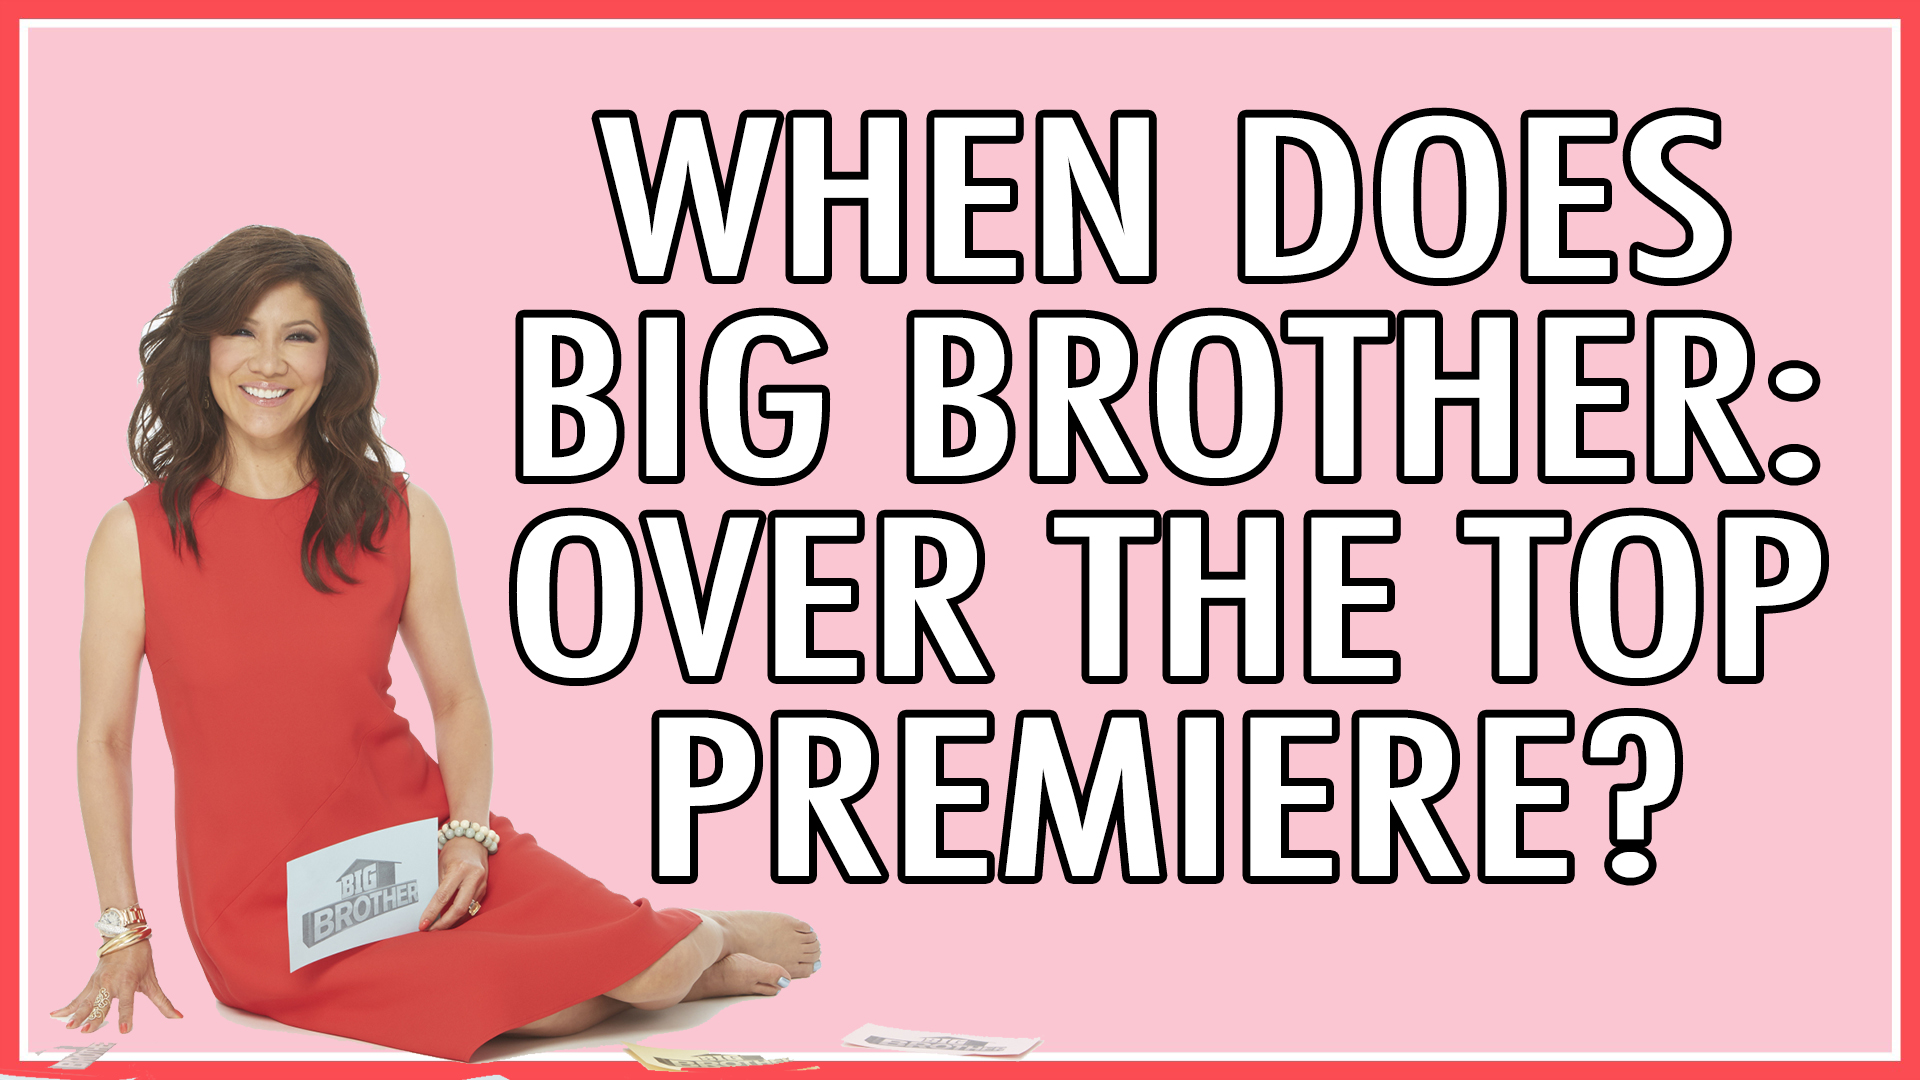 When does Big Brother: Over The Top premiere?